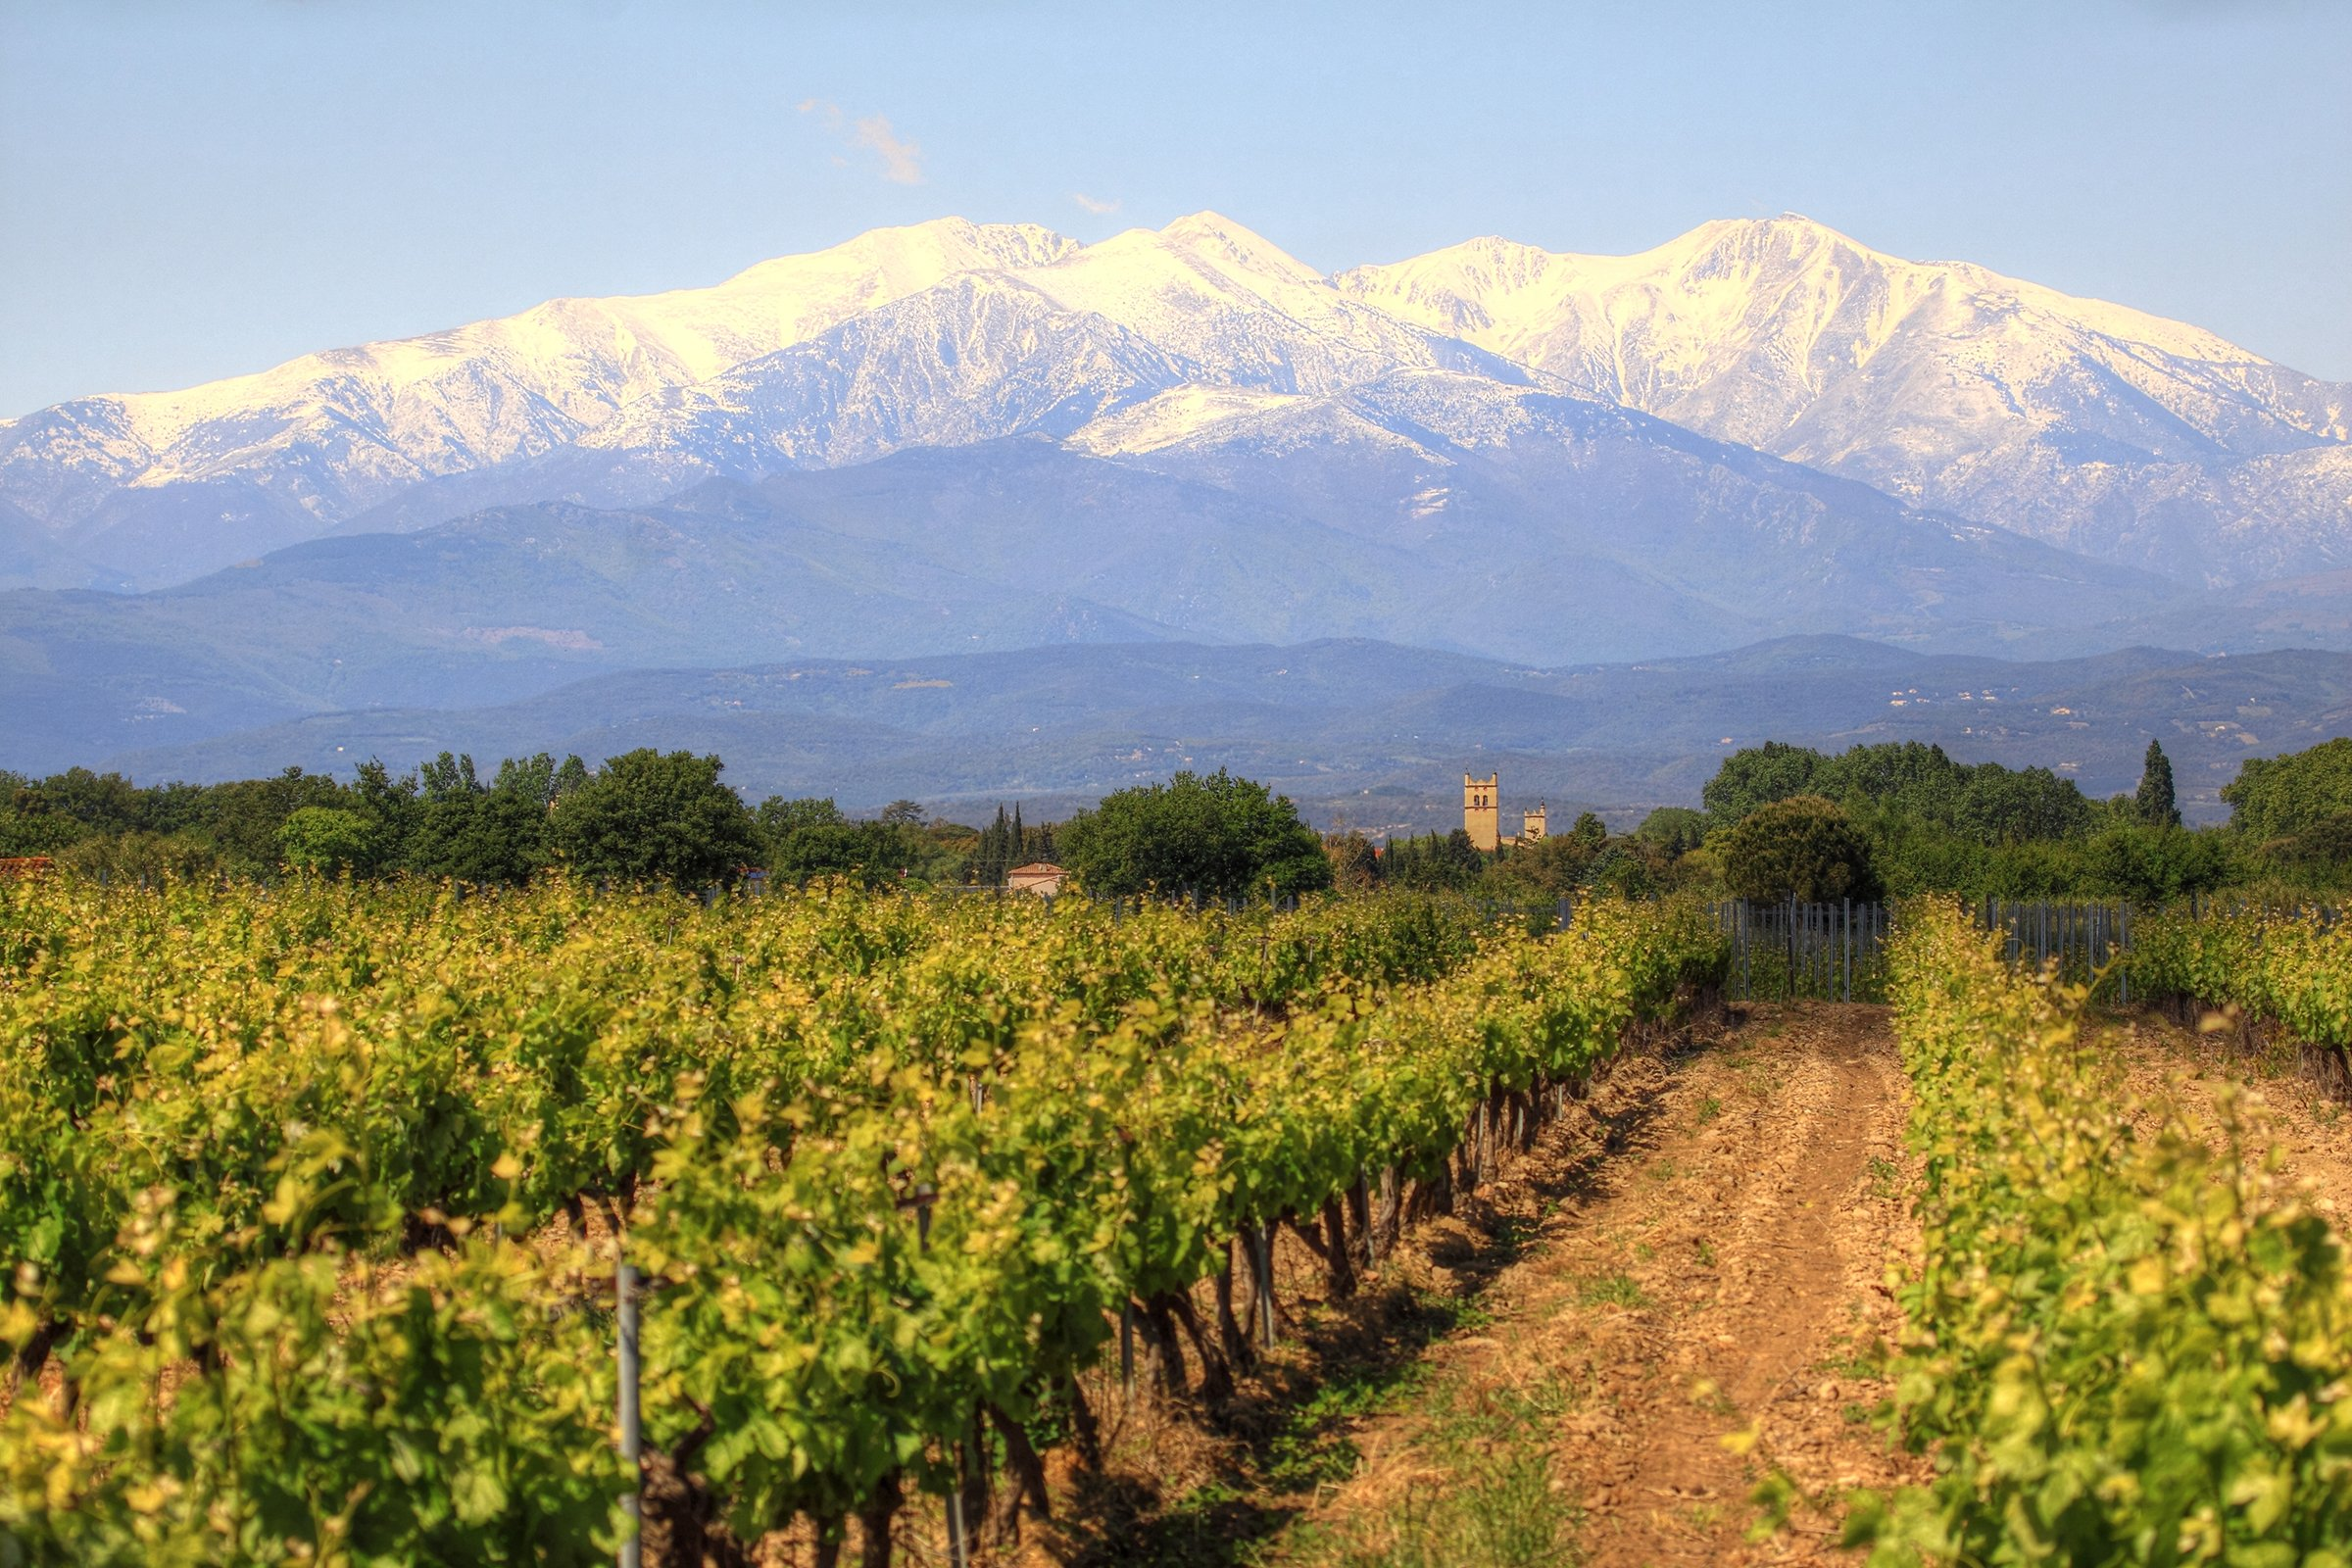 Snow capped Pyrenees and vineyardVignoble avec vue sure le Mont Canigou dans les Pyrenees Orientales (France) by matteo Scarano Adobe Stock